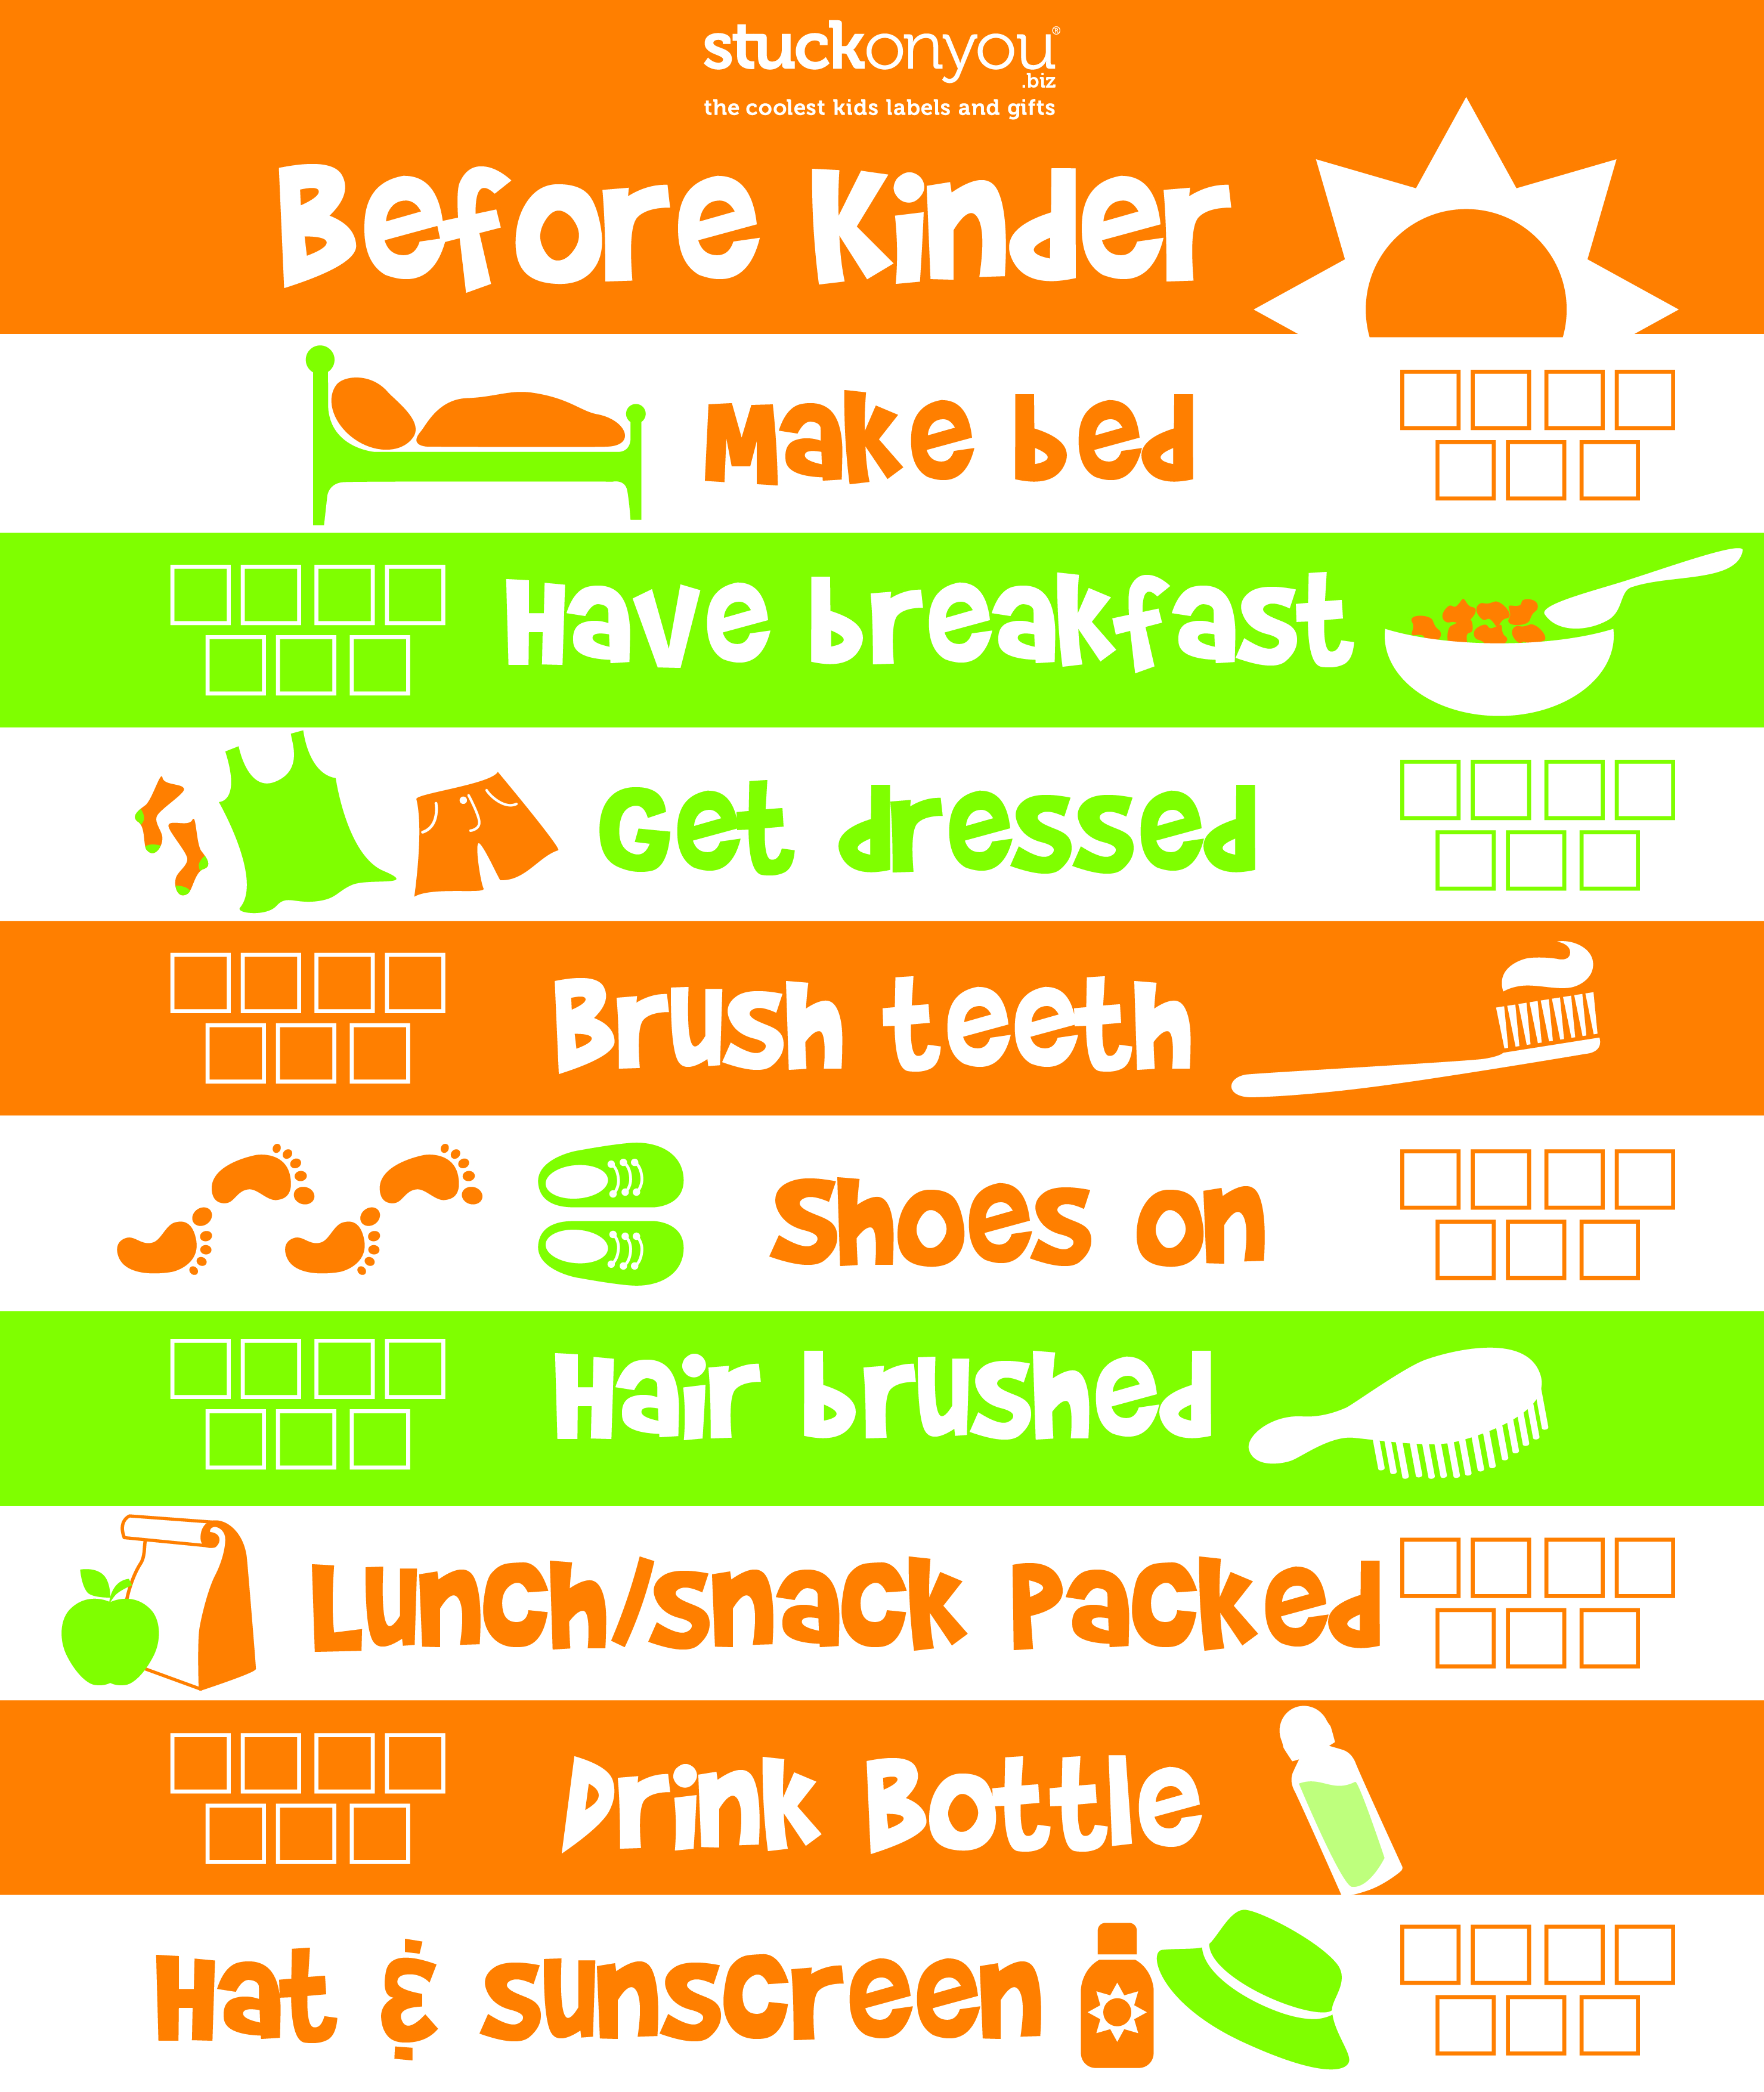 Free printable Before Kinder Checklist